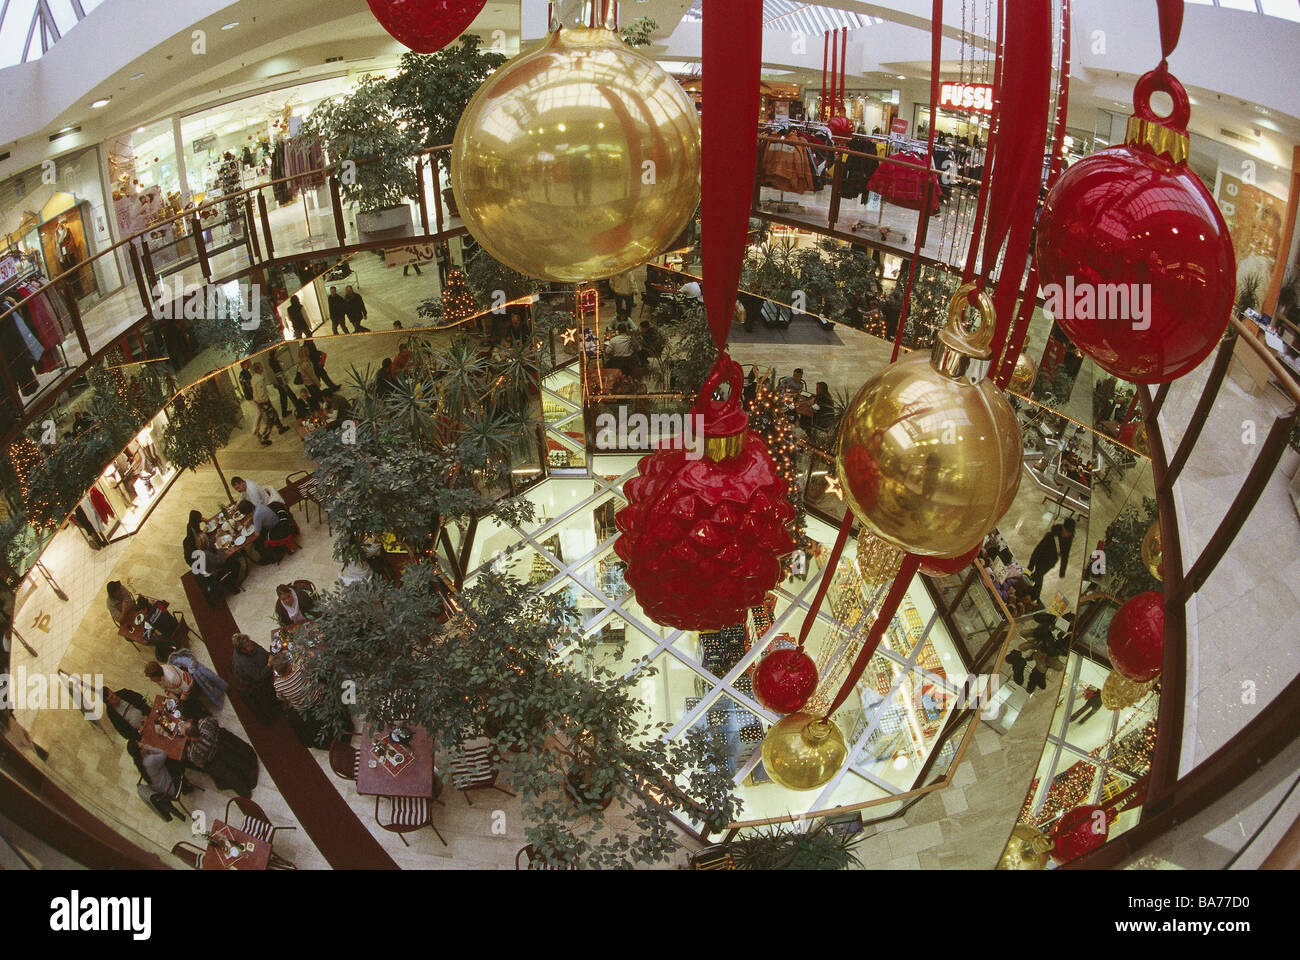 Shopping center Christmasdecoration people wideangle businesses